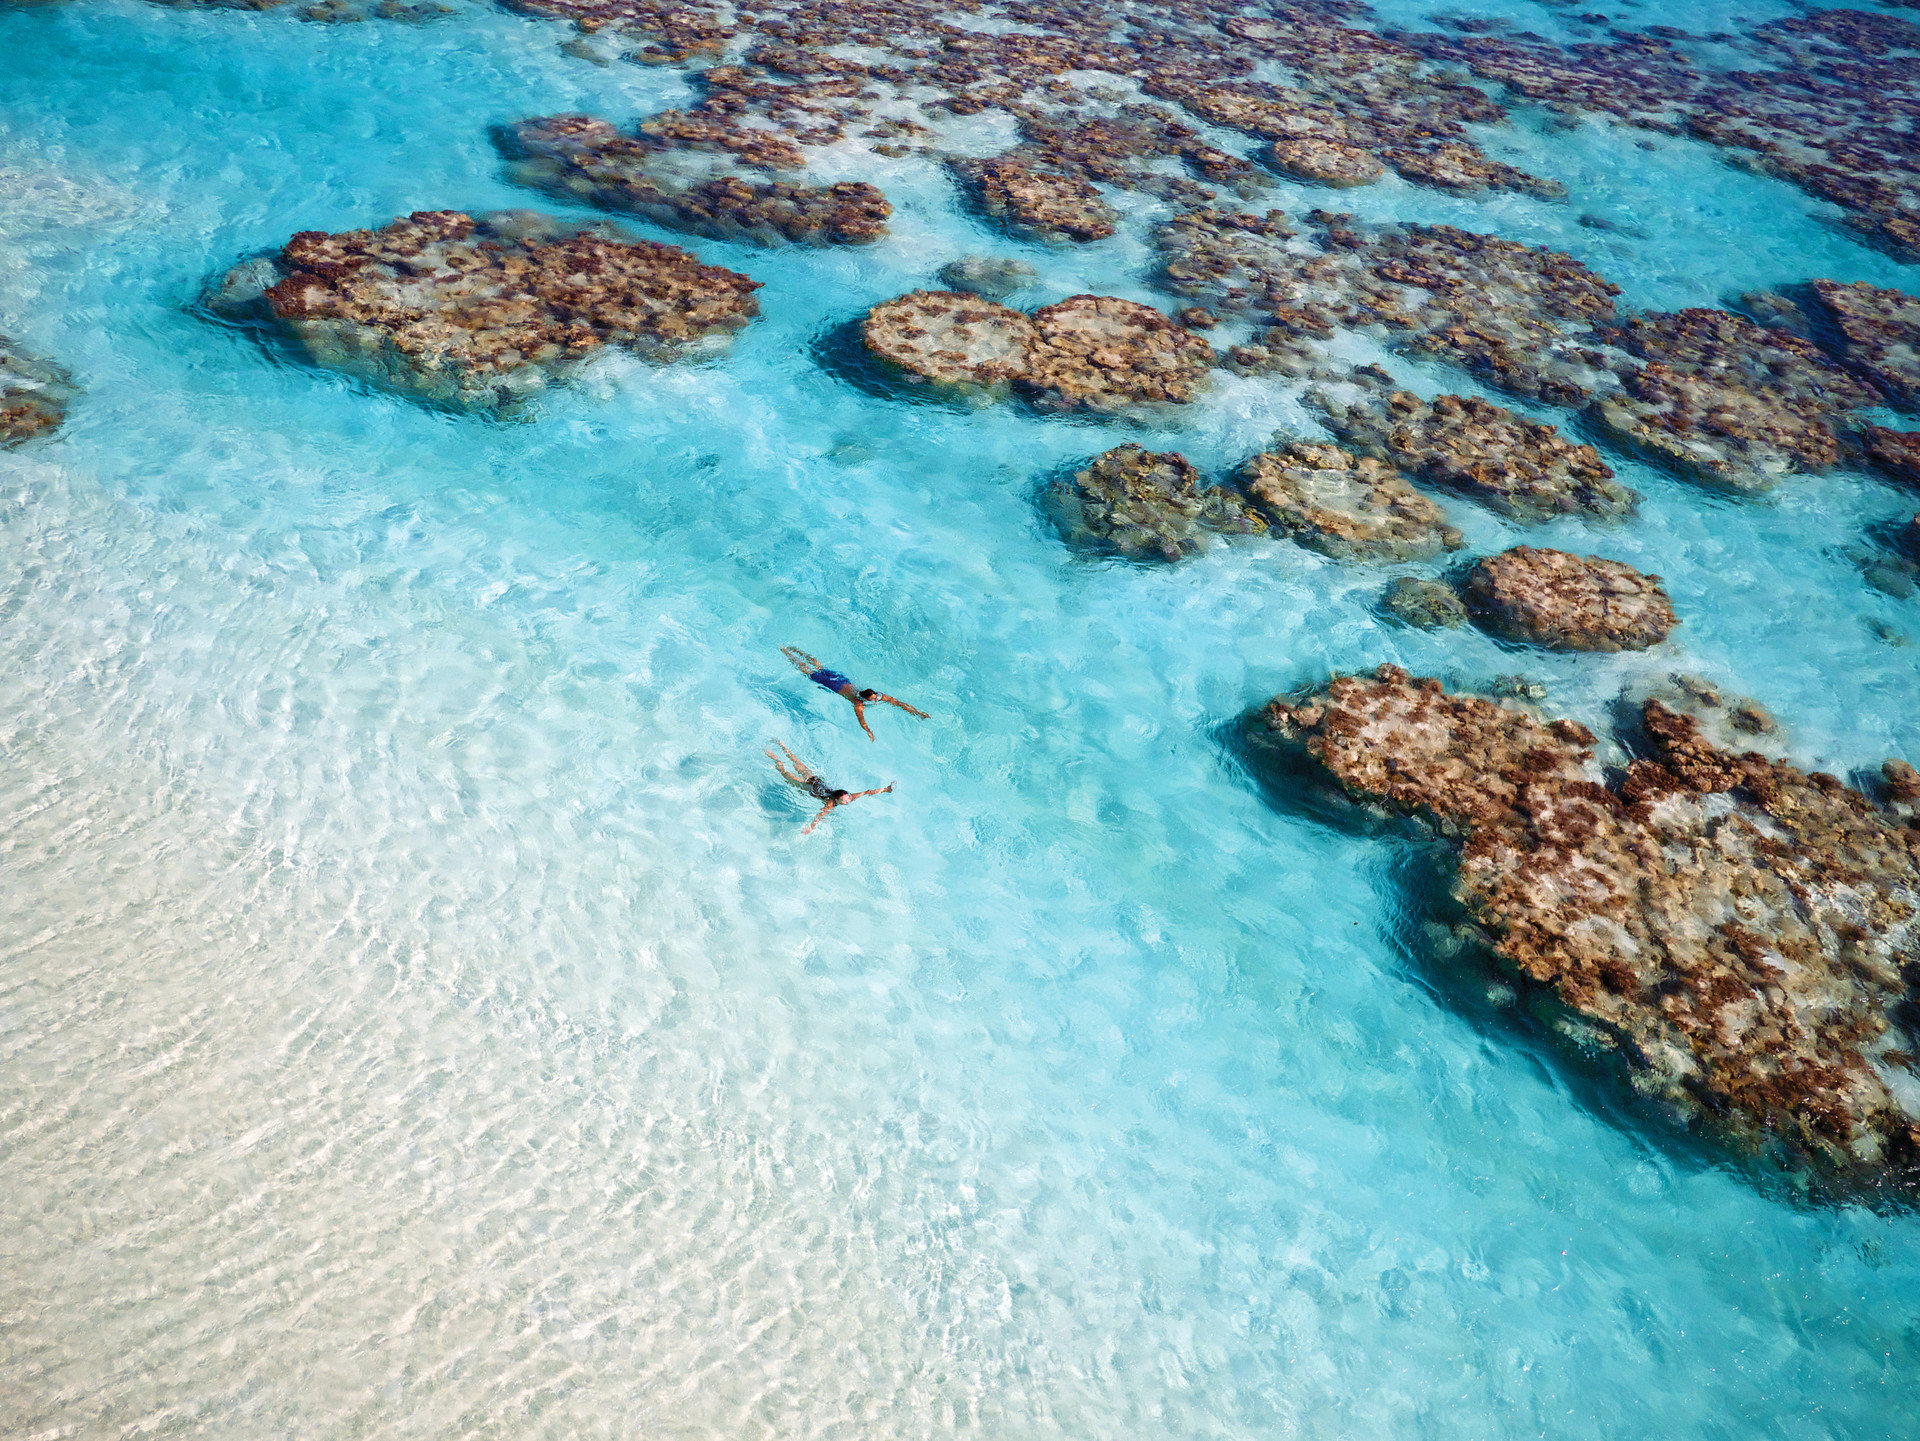 Beach calm clear water Islands isolation Ocean Outdoor Activities people remote serene swim swimmers swimming Travel Tips Tropical turquoise Water activities Water Sports white sands water Nature marine biology Sea reef biology Pool coral reef underwater Coast coral sand tide pool shore